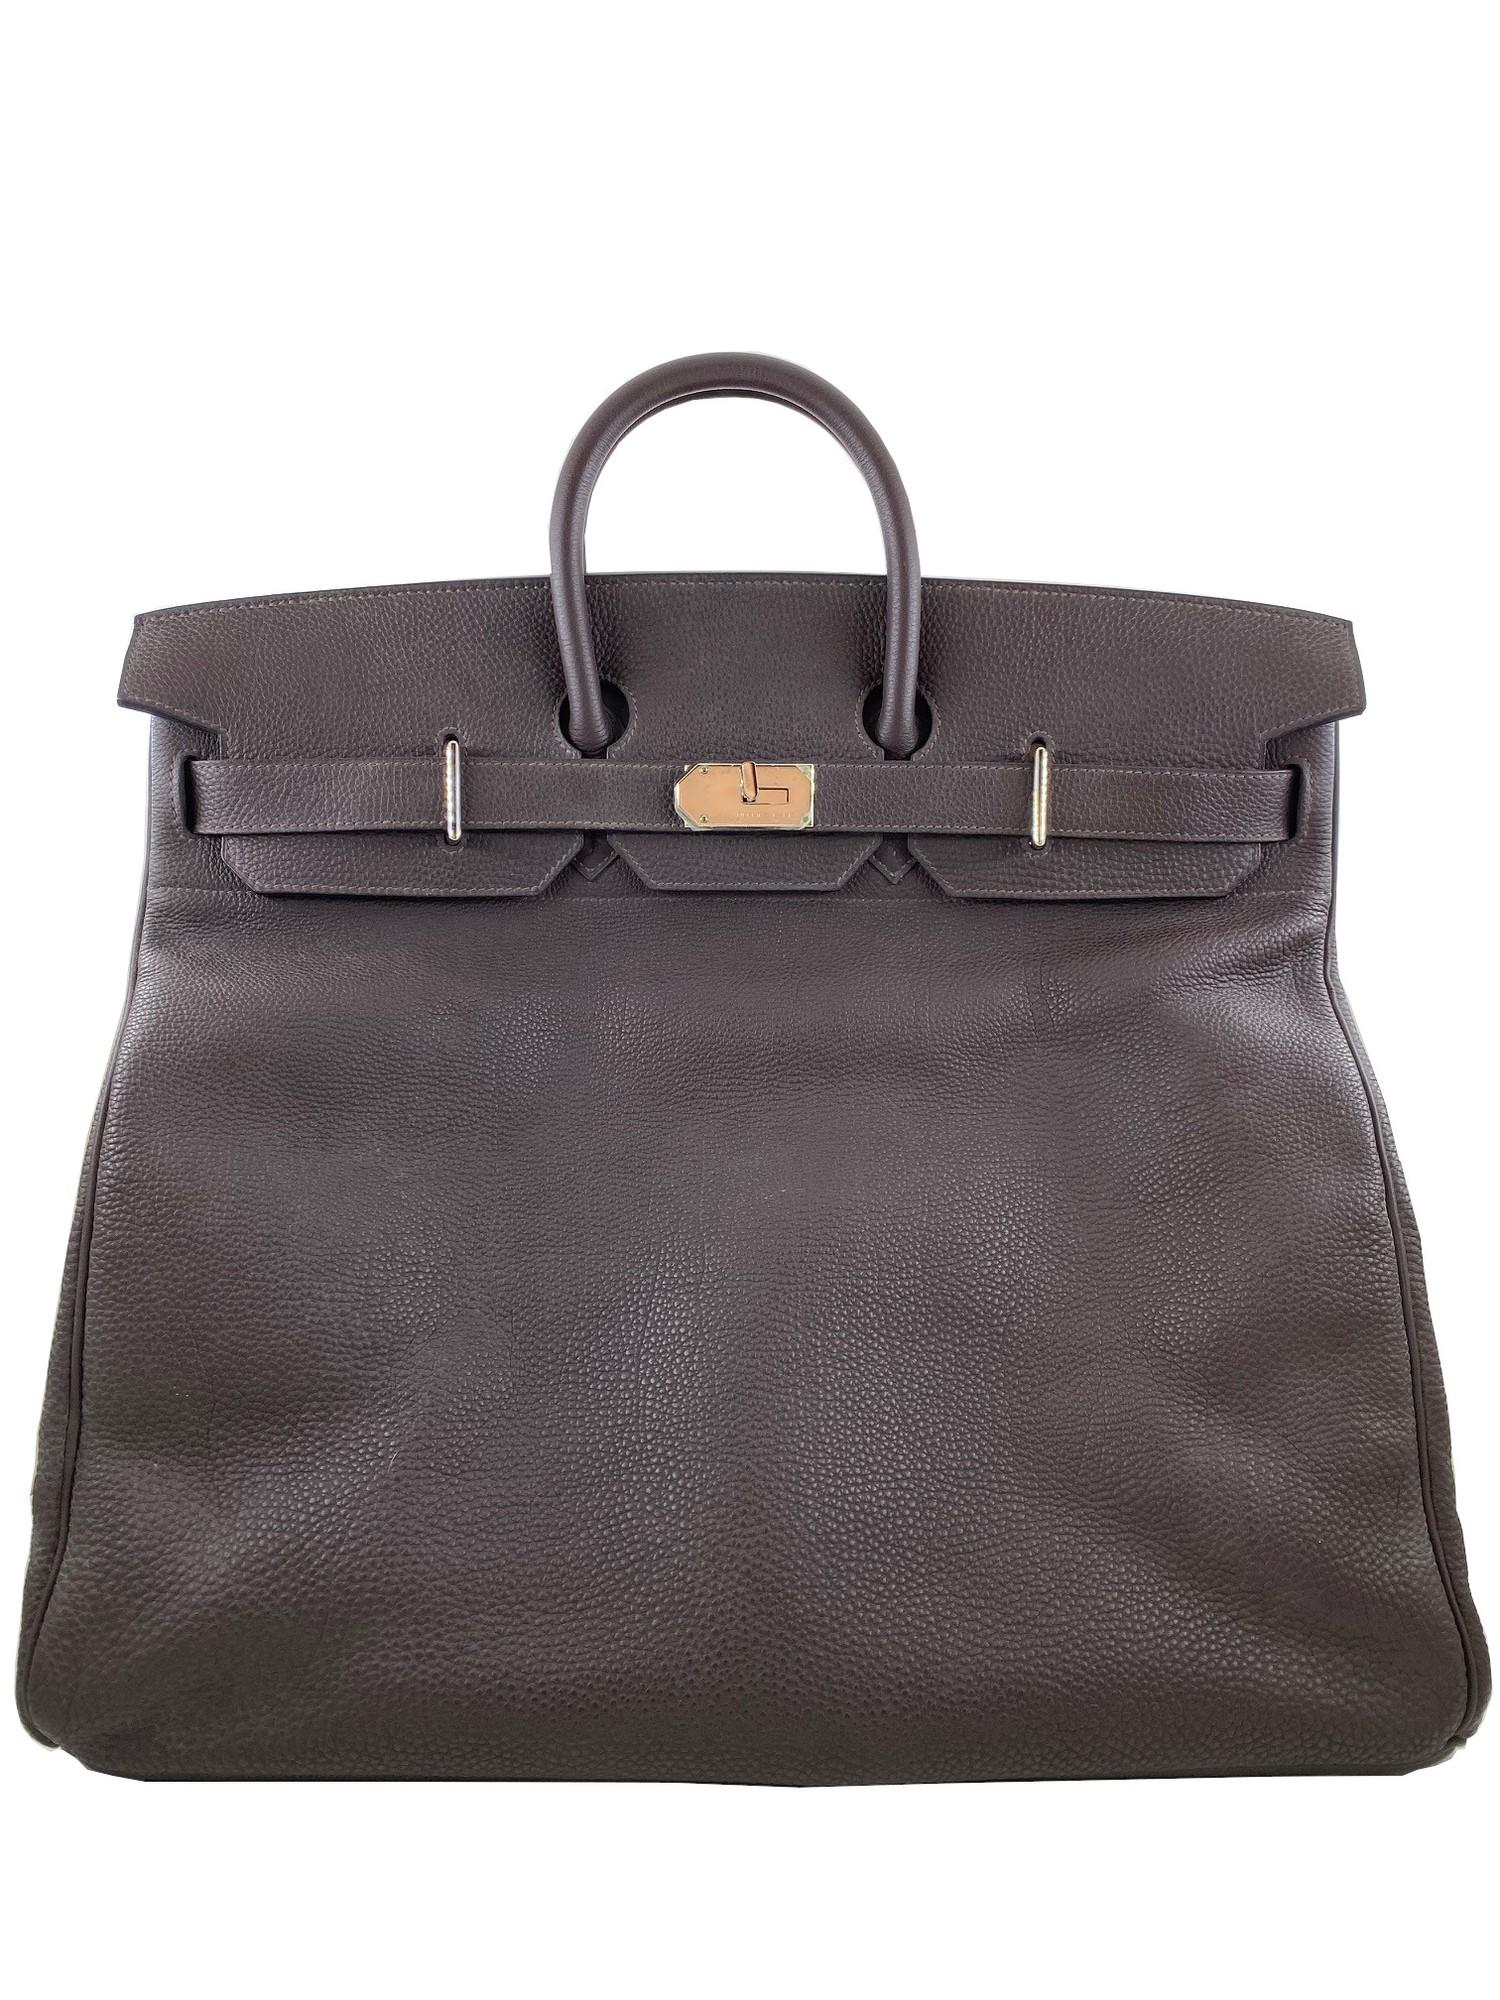 A brown Hermes Birkin Haut à Courroies (HAC) in togo leather with gold hardware, with dustbag, lock,